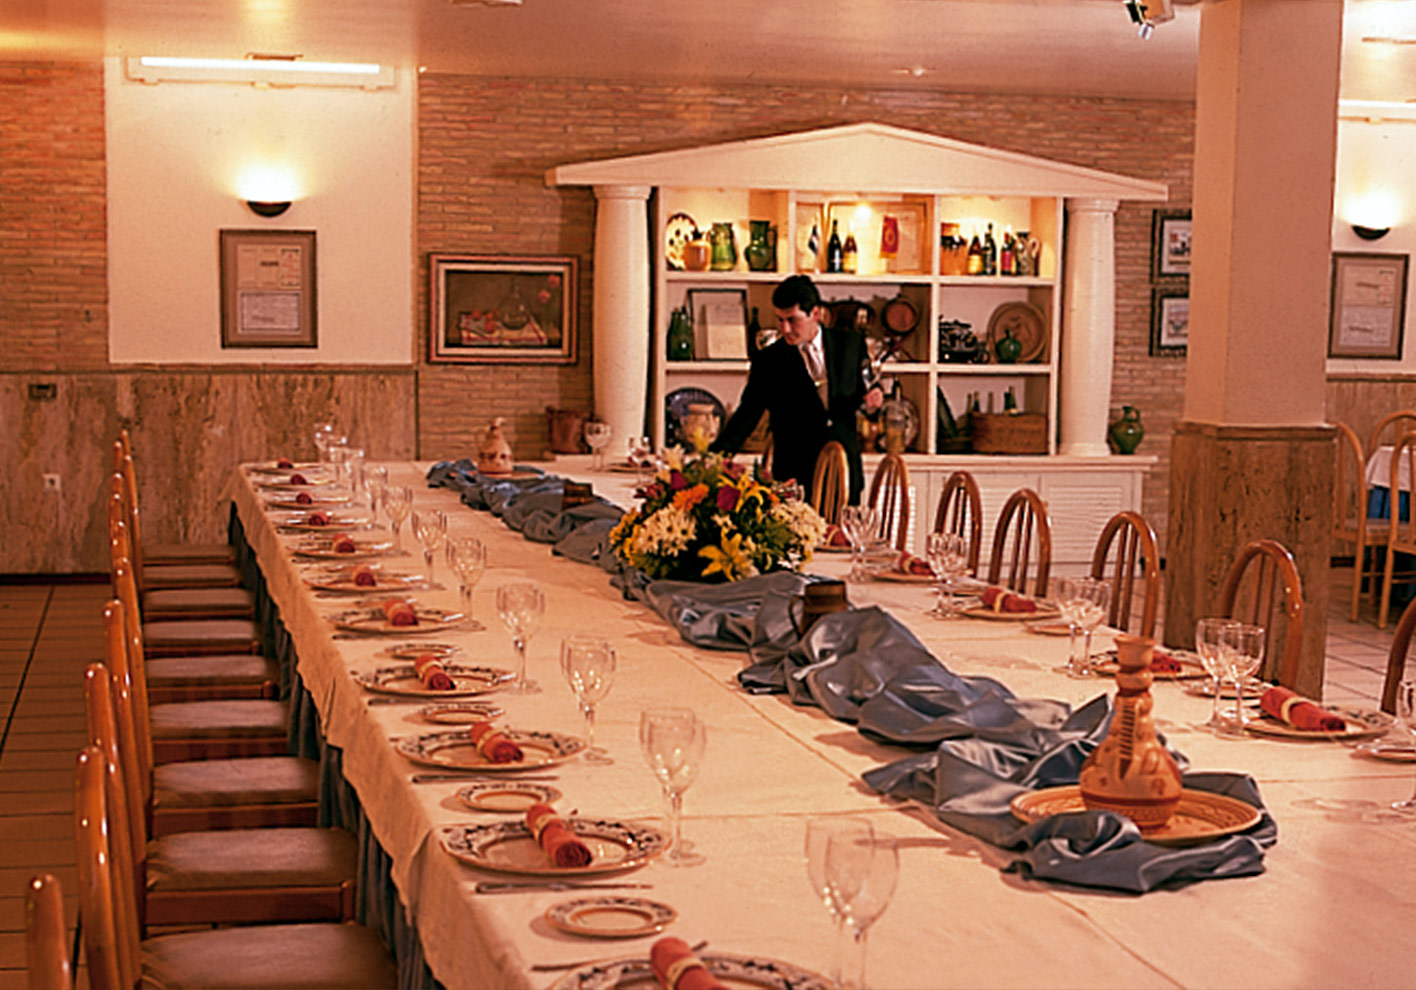 Private Dining Room 06 - Hotel Restaurante Terraza Carmona in Vera, Almeria